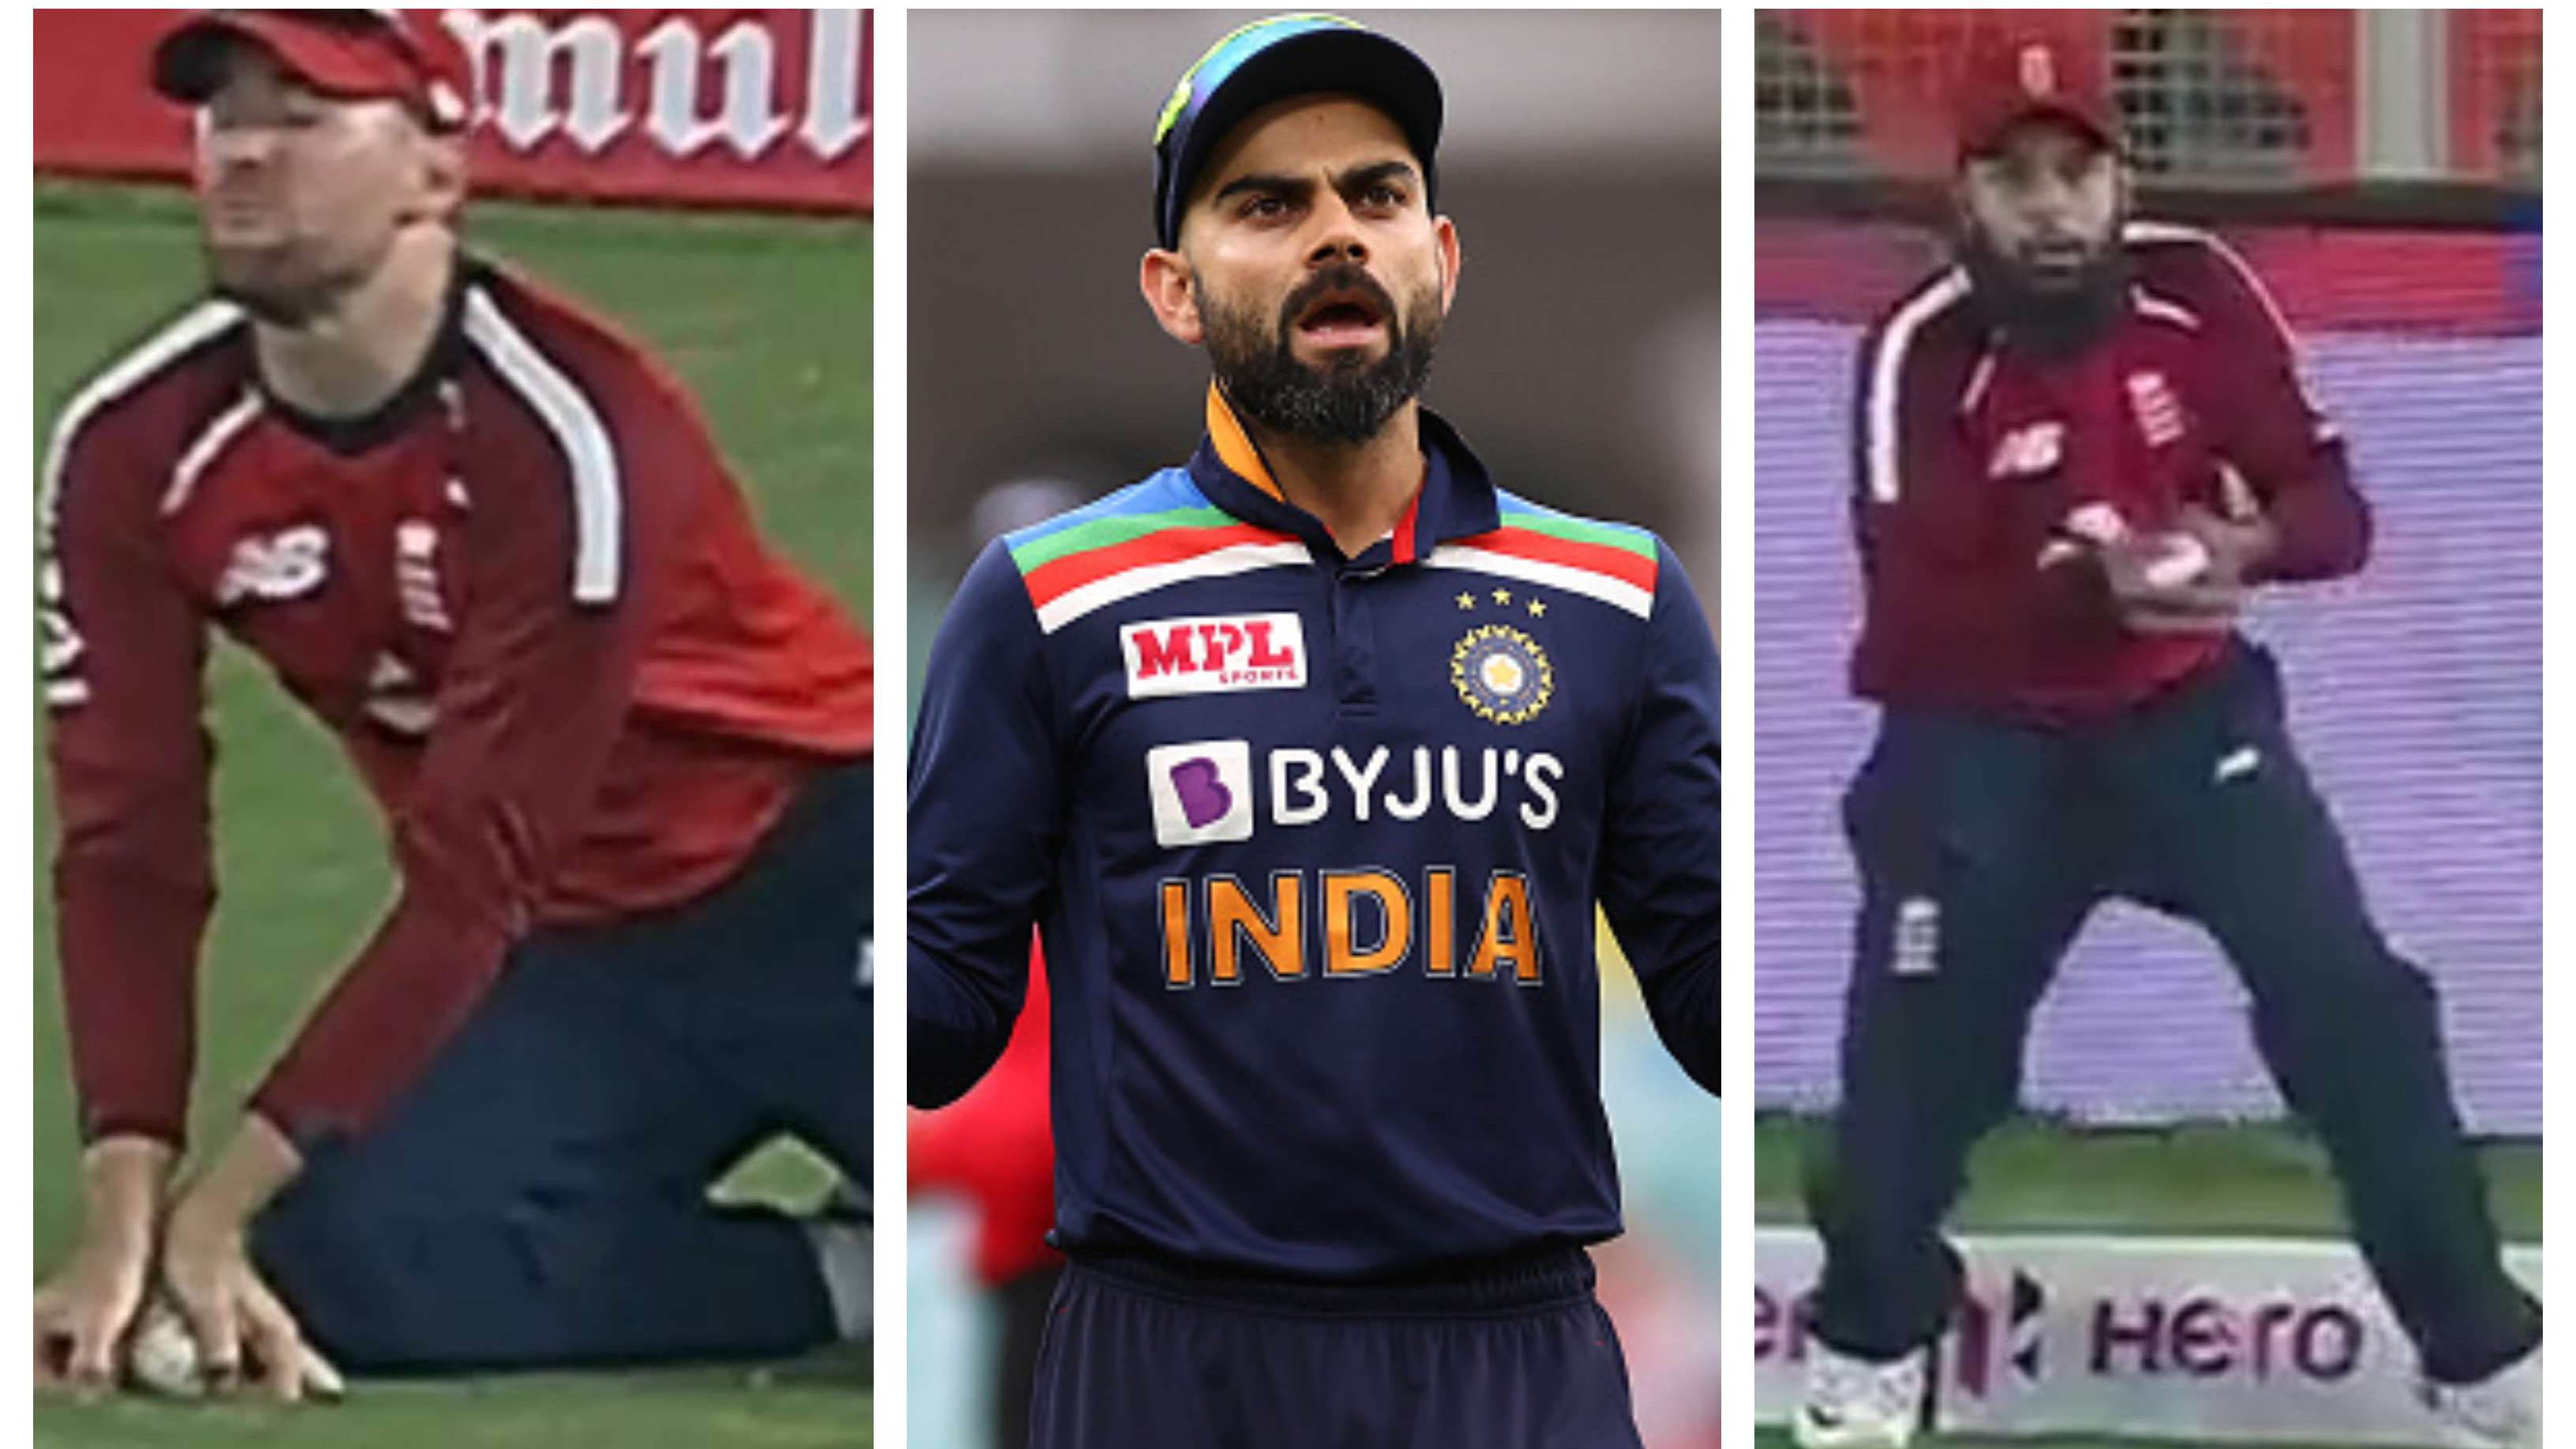 IND v ENG 2021: Virat Kohli calls for change in umpire's soft signal after controversial decisions in 4th T20I